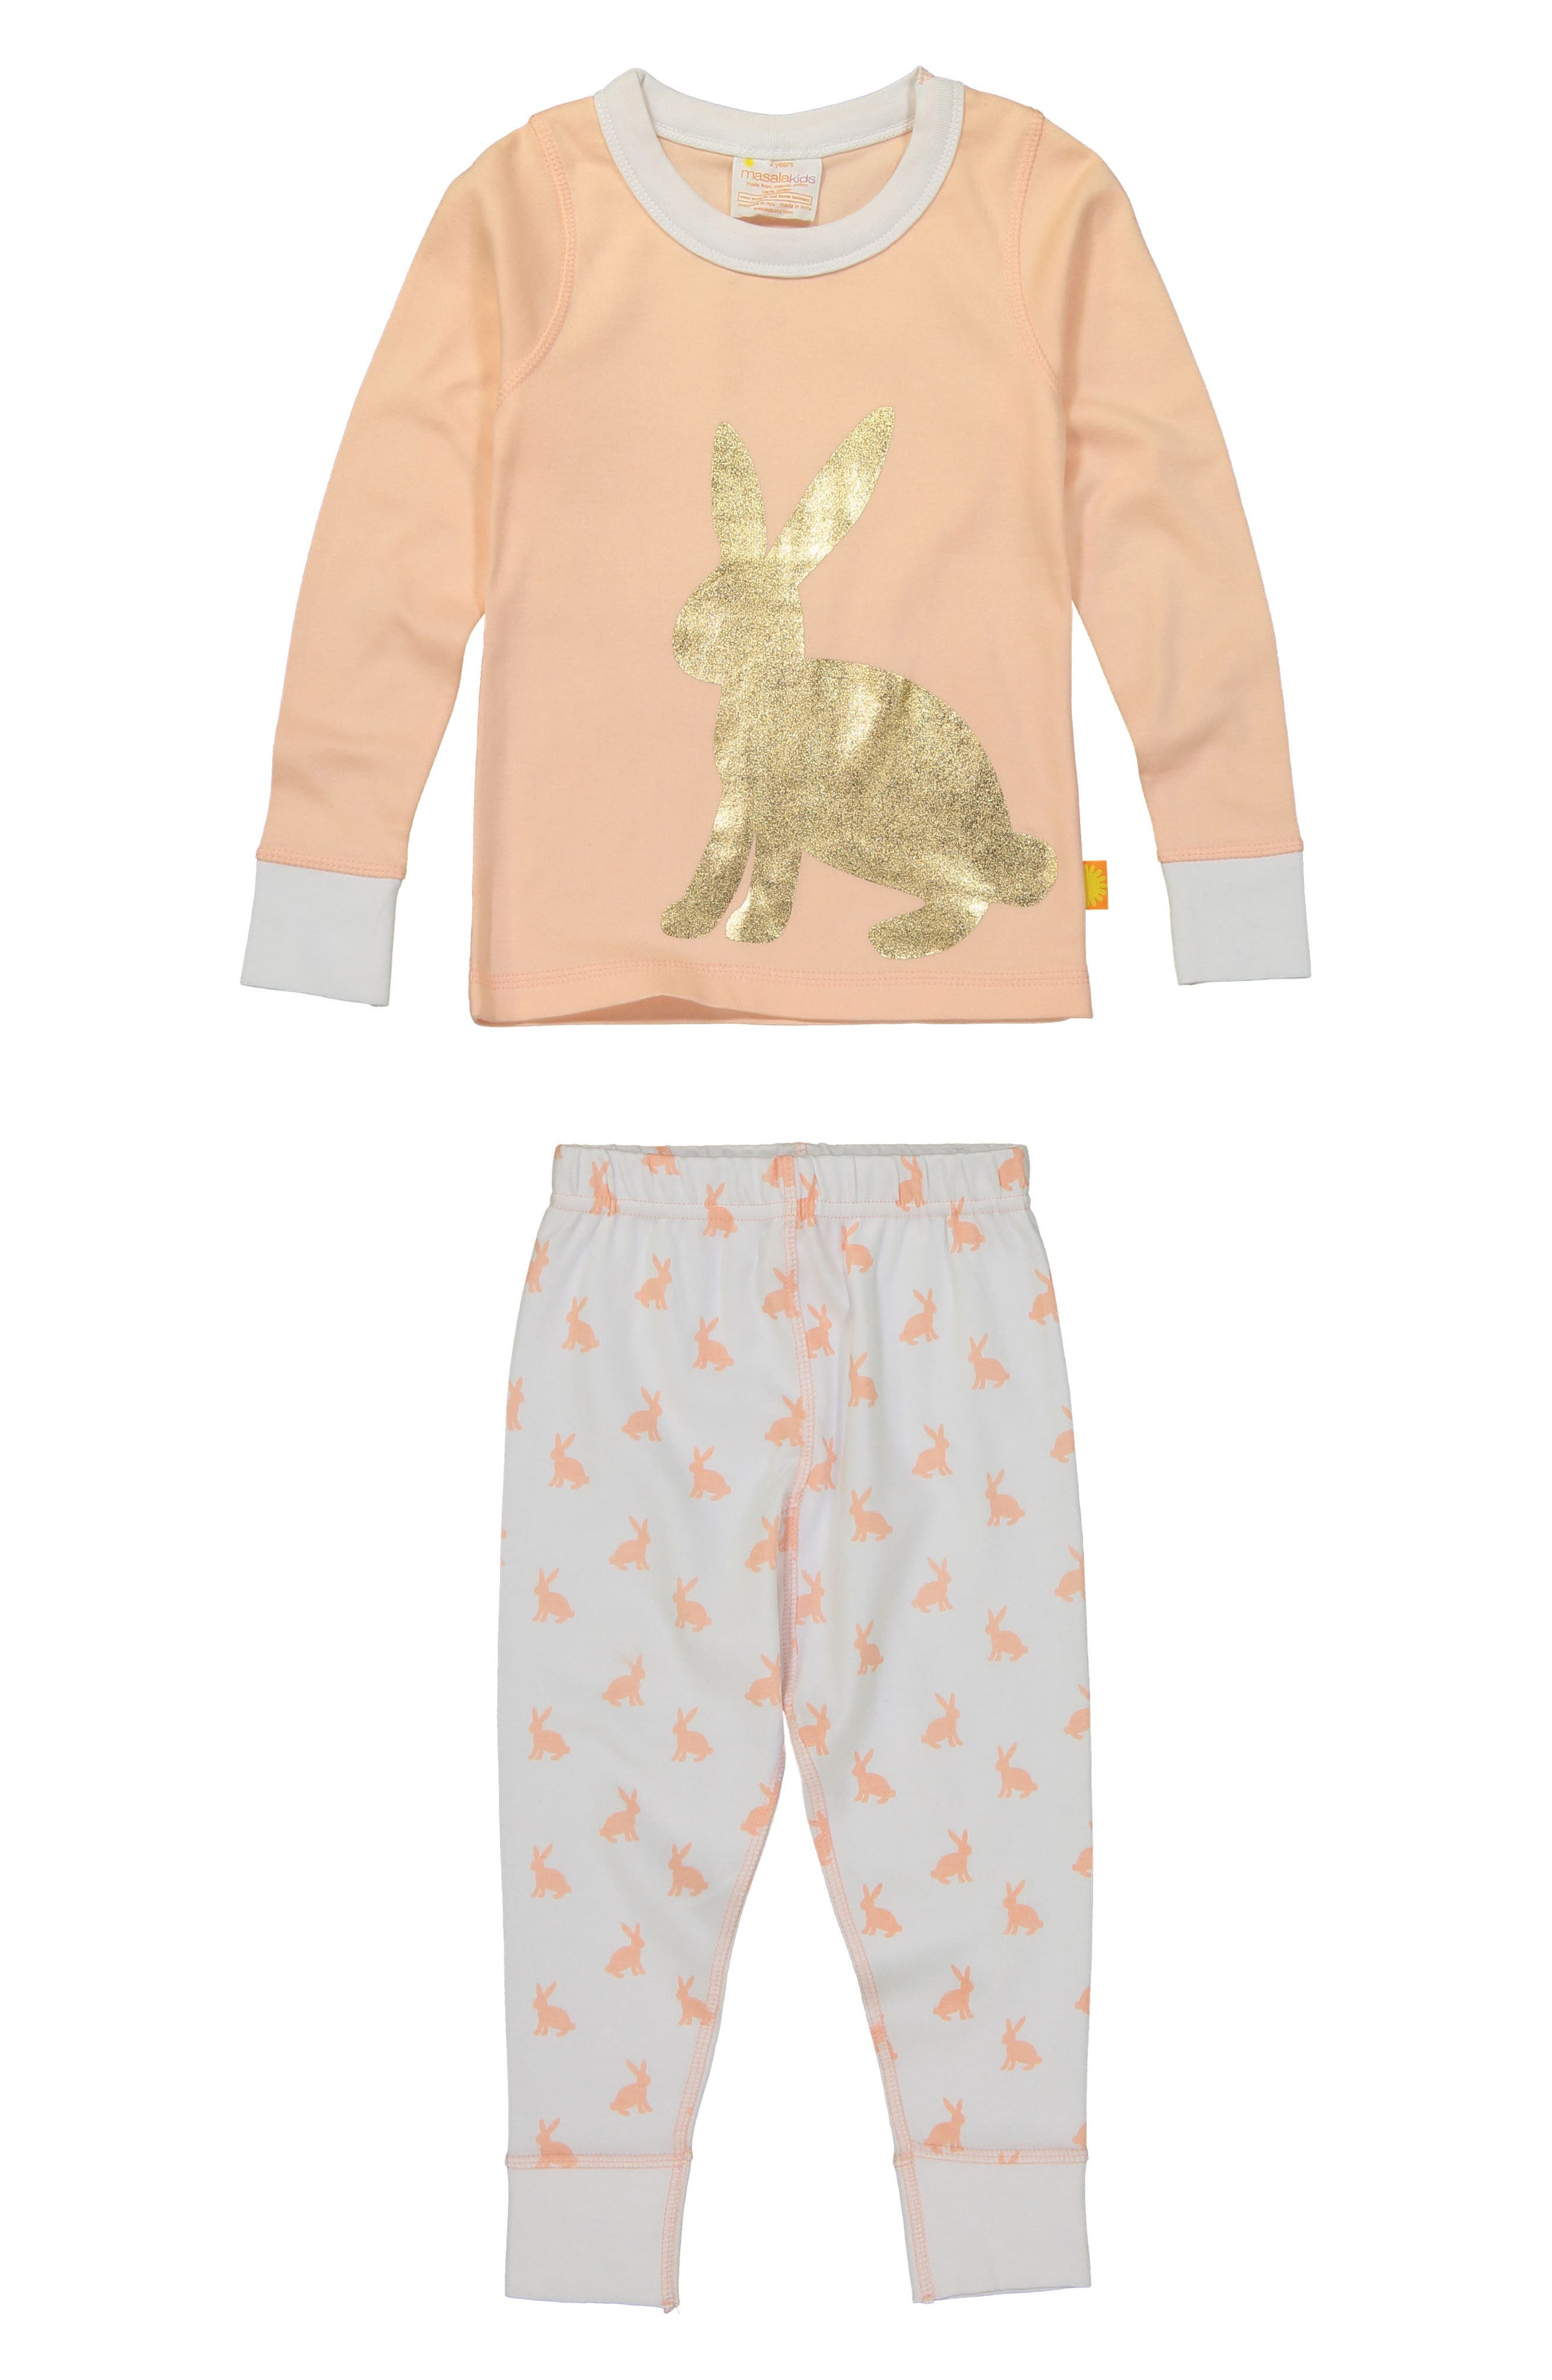 Bunny Hop Fitted Two-Piece Pajamas,                             Main thumbnail 1, color,                             680